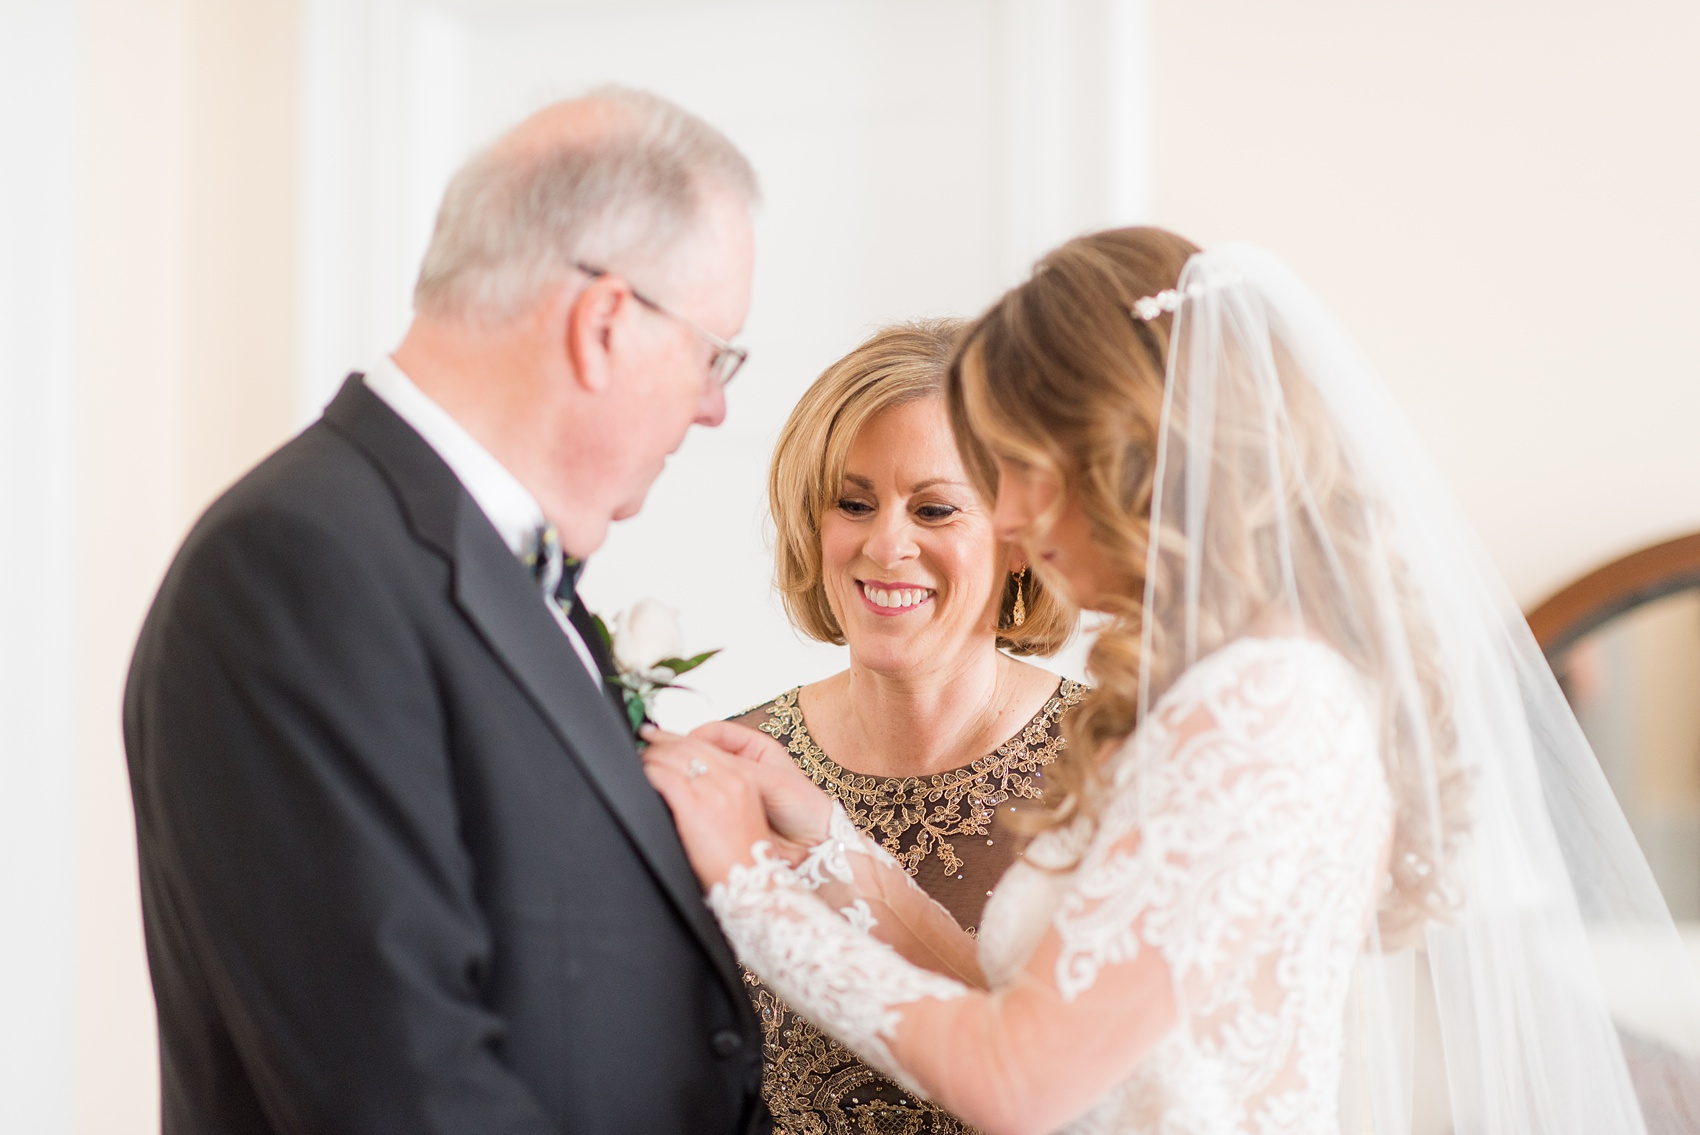 Wedding photos at Sleepy Hollow Country Club for a winter reception in January by Mikkel Paige Photography. A picture of the bride helping pin on her father's boutonniere.